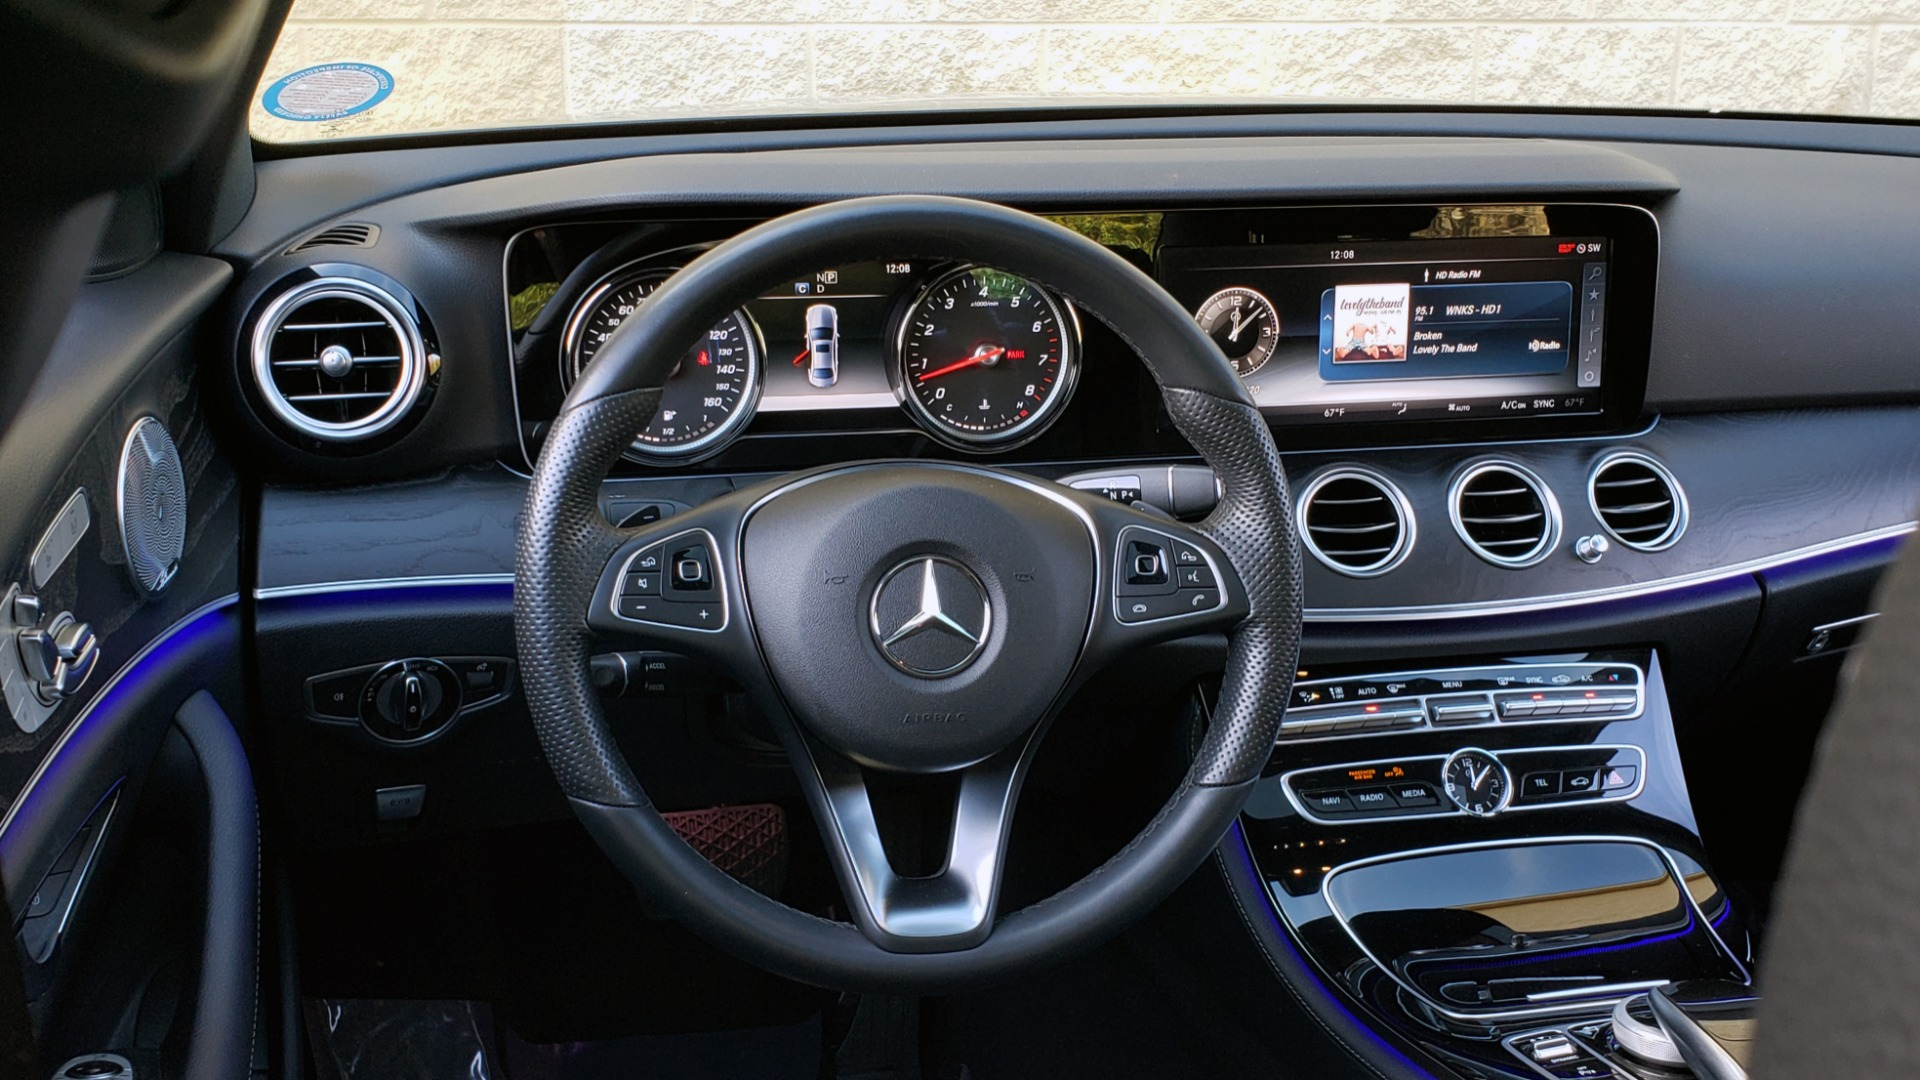 Used 2017 Mercedes-Benz E-CLASS E 300 PREMIUM / NAV / SUNROOF / BURMESTER / HTD STS / REARVIEW for sale $29,995 at Formula Imports in Charlotte NC 28227 40